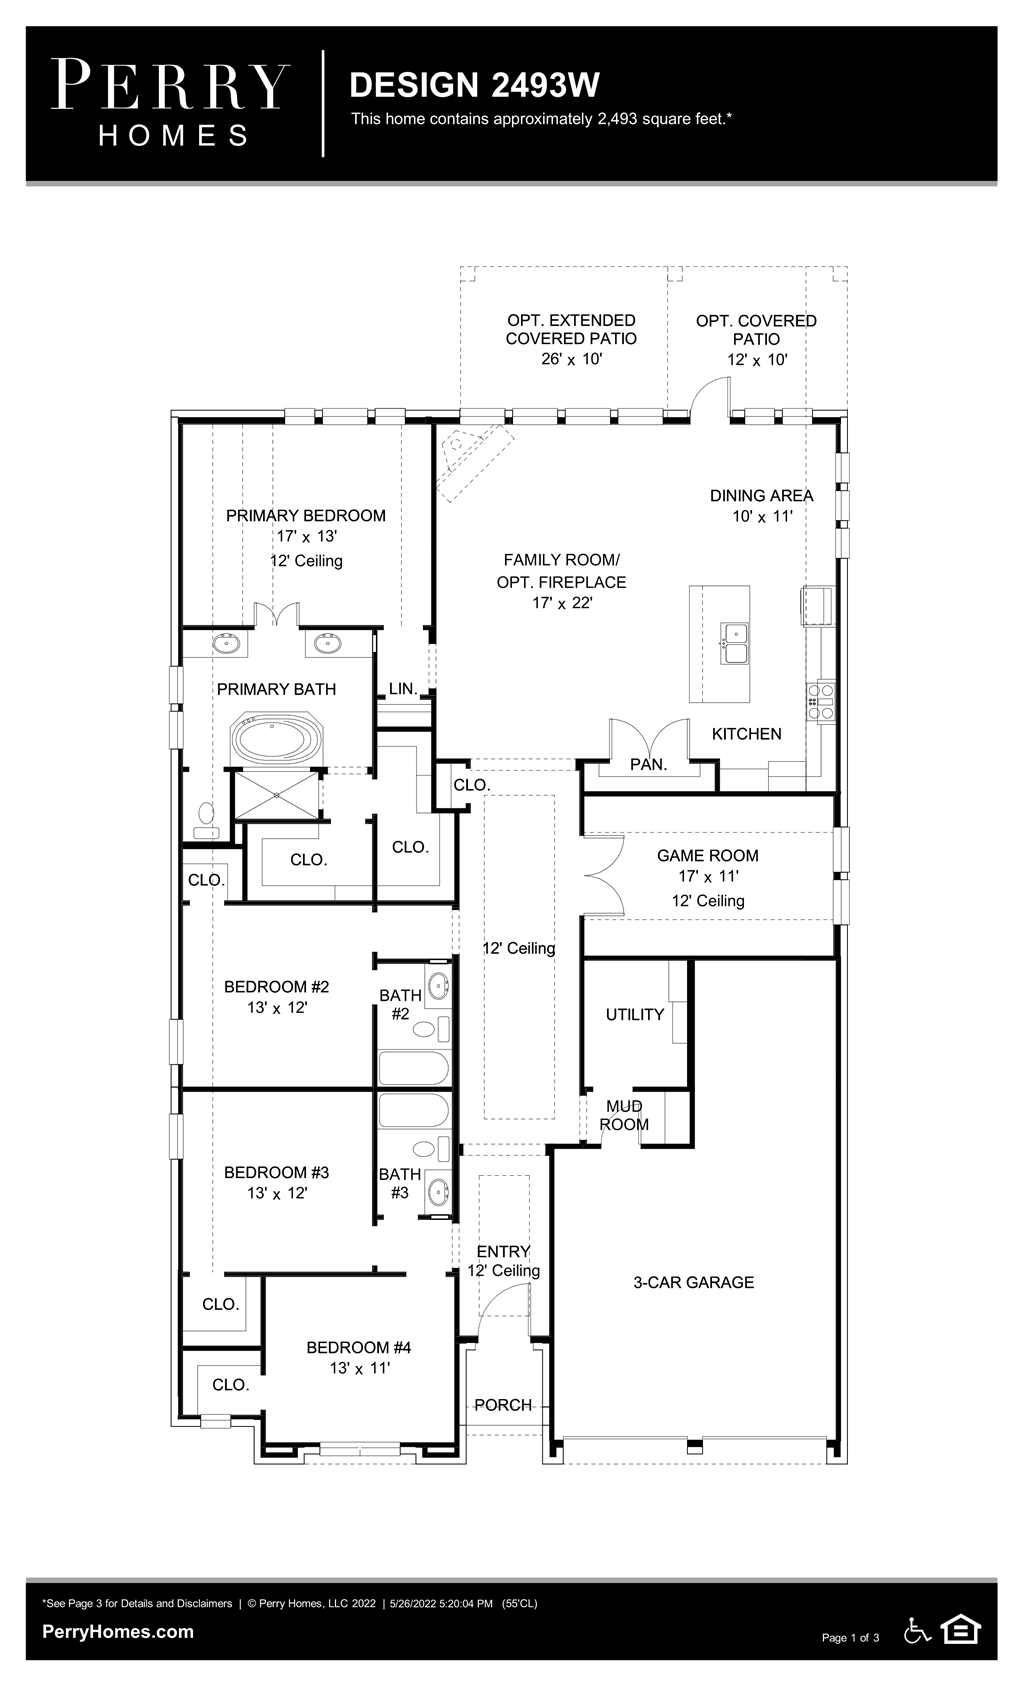 Floor Plan for 2493W